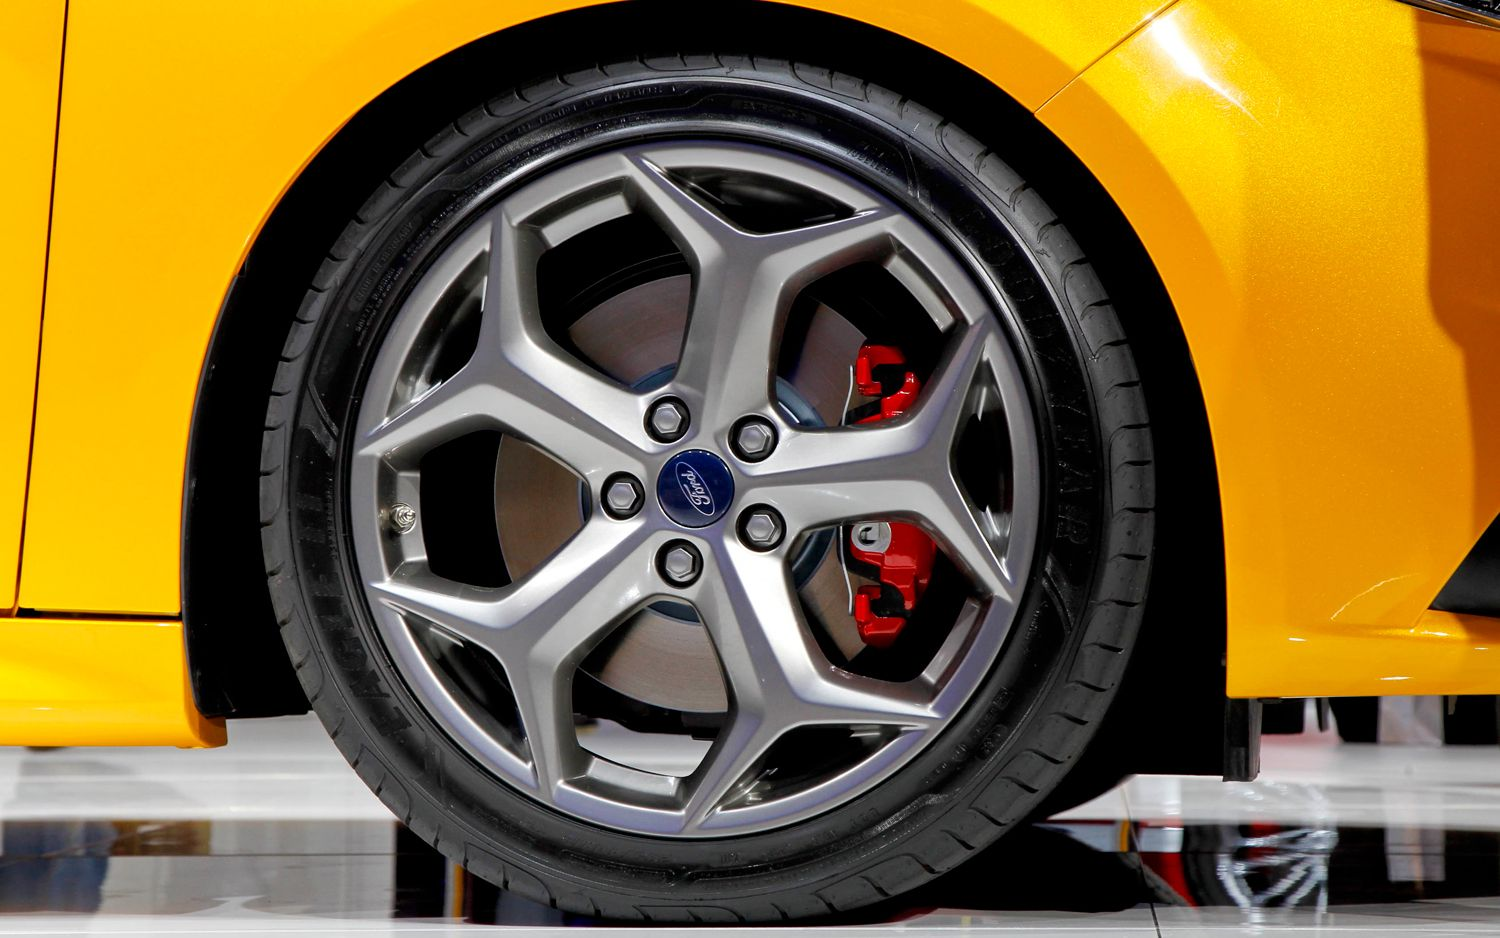 Ford Focus ST wheels #2